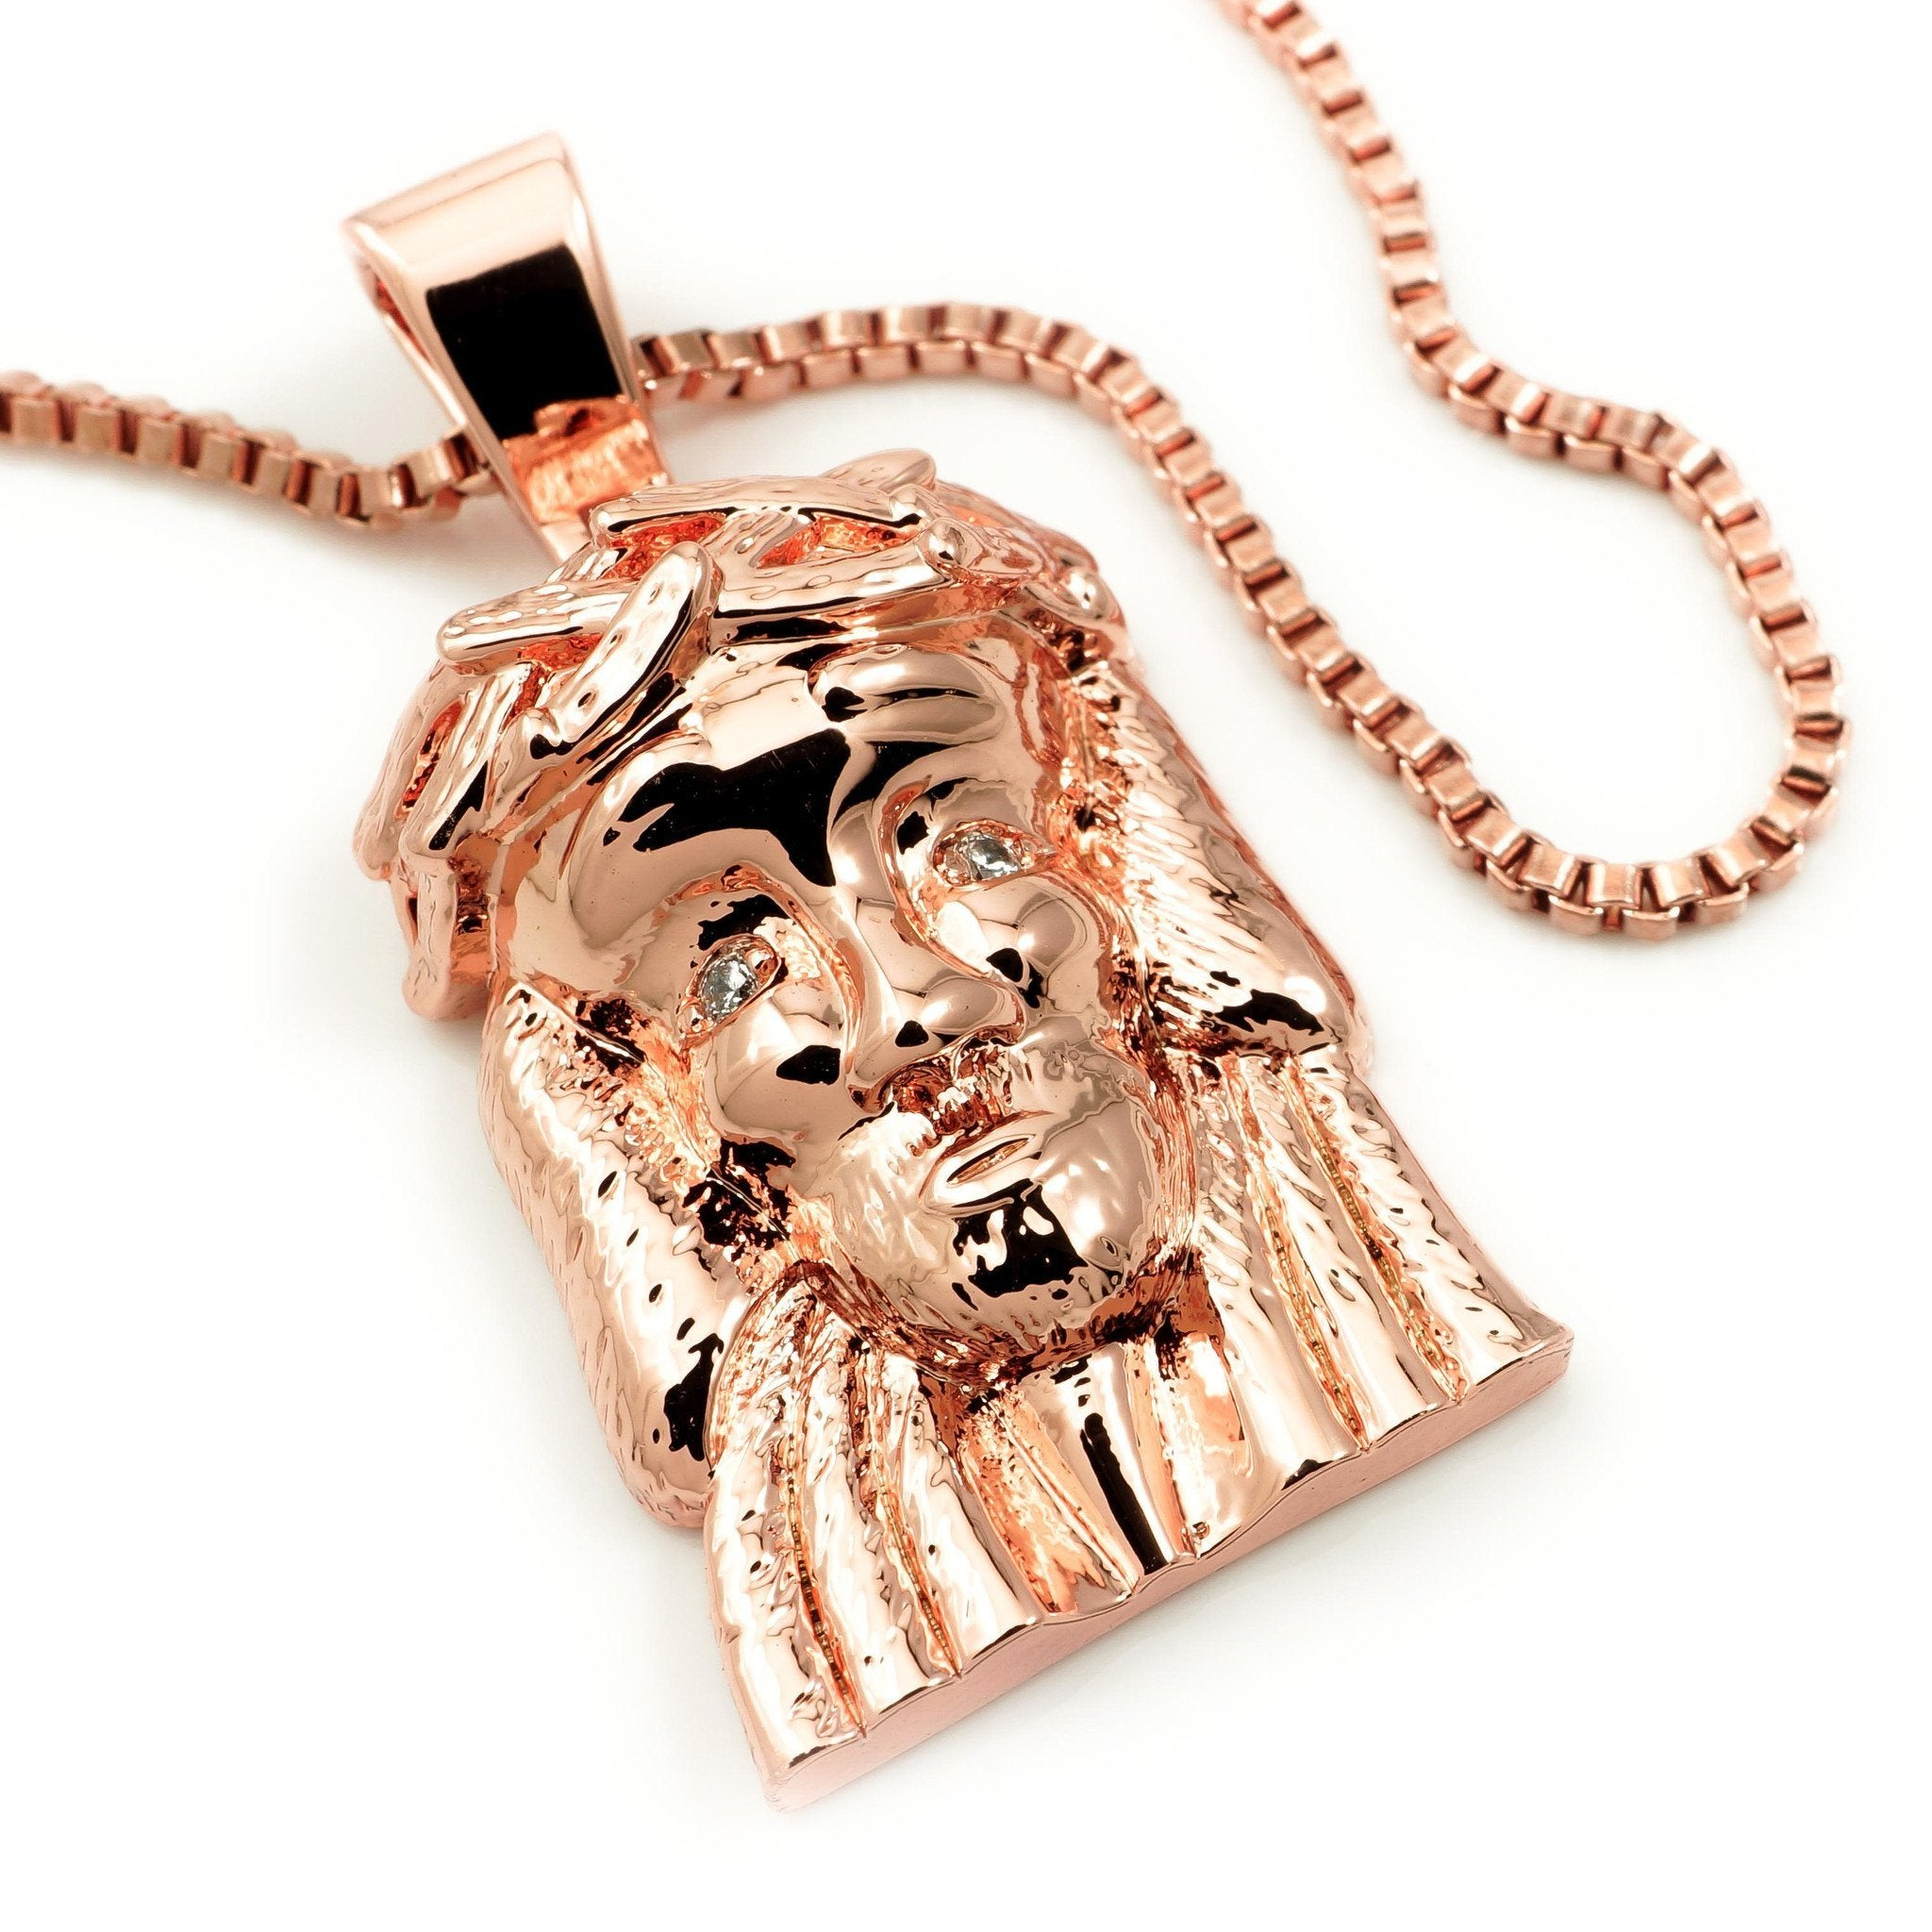 18k rose gold jesus piece 6 with box chain nivs bling 18k rose gold jesus piece 6 with box chain aloadofball Image collections